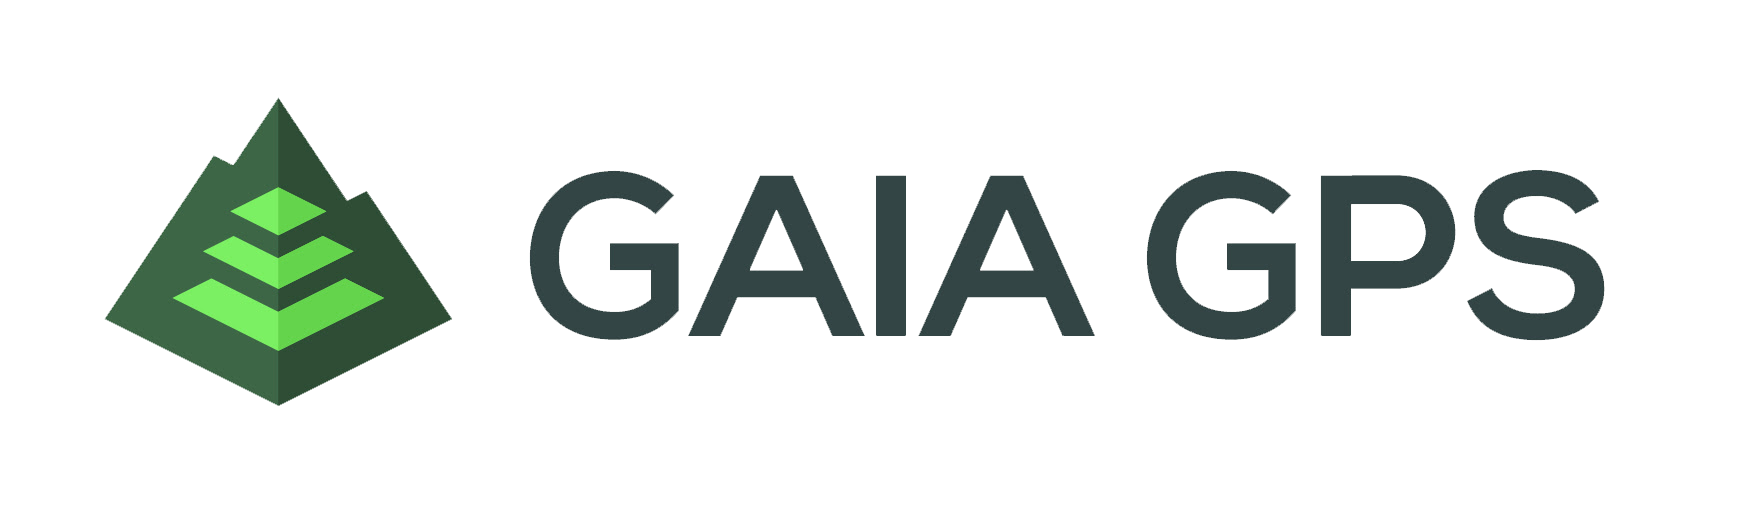 FREE TRIAL - Not sure you what navigation application to use? Use the link below to get a free trial to Gaia GPS.